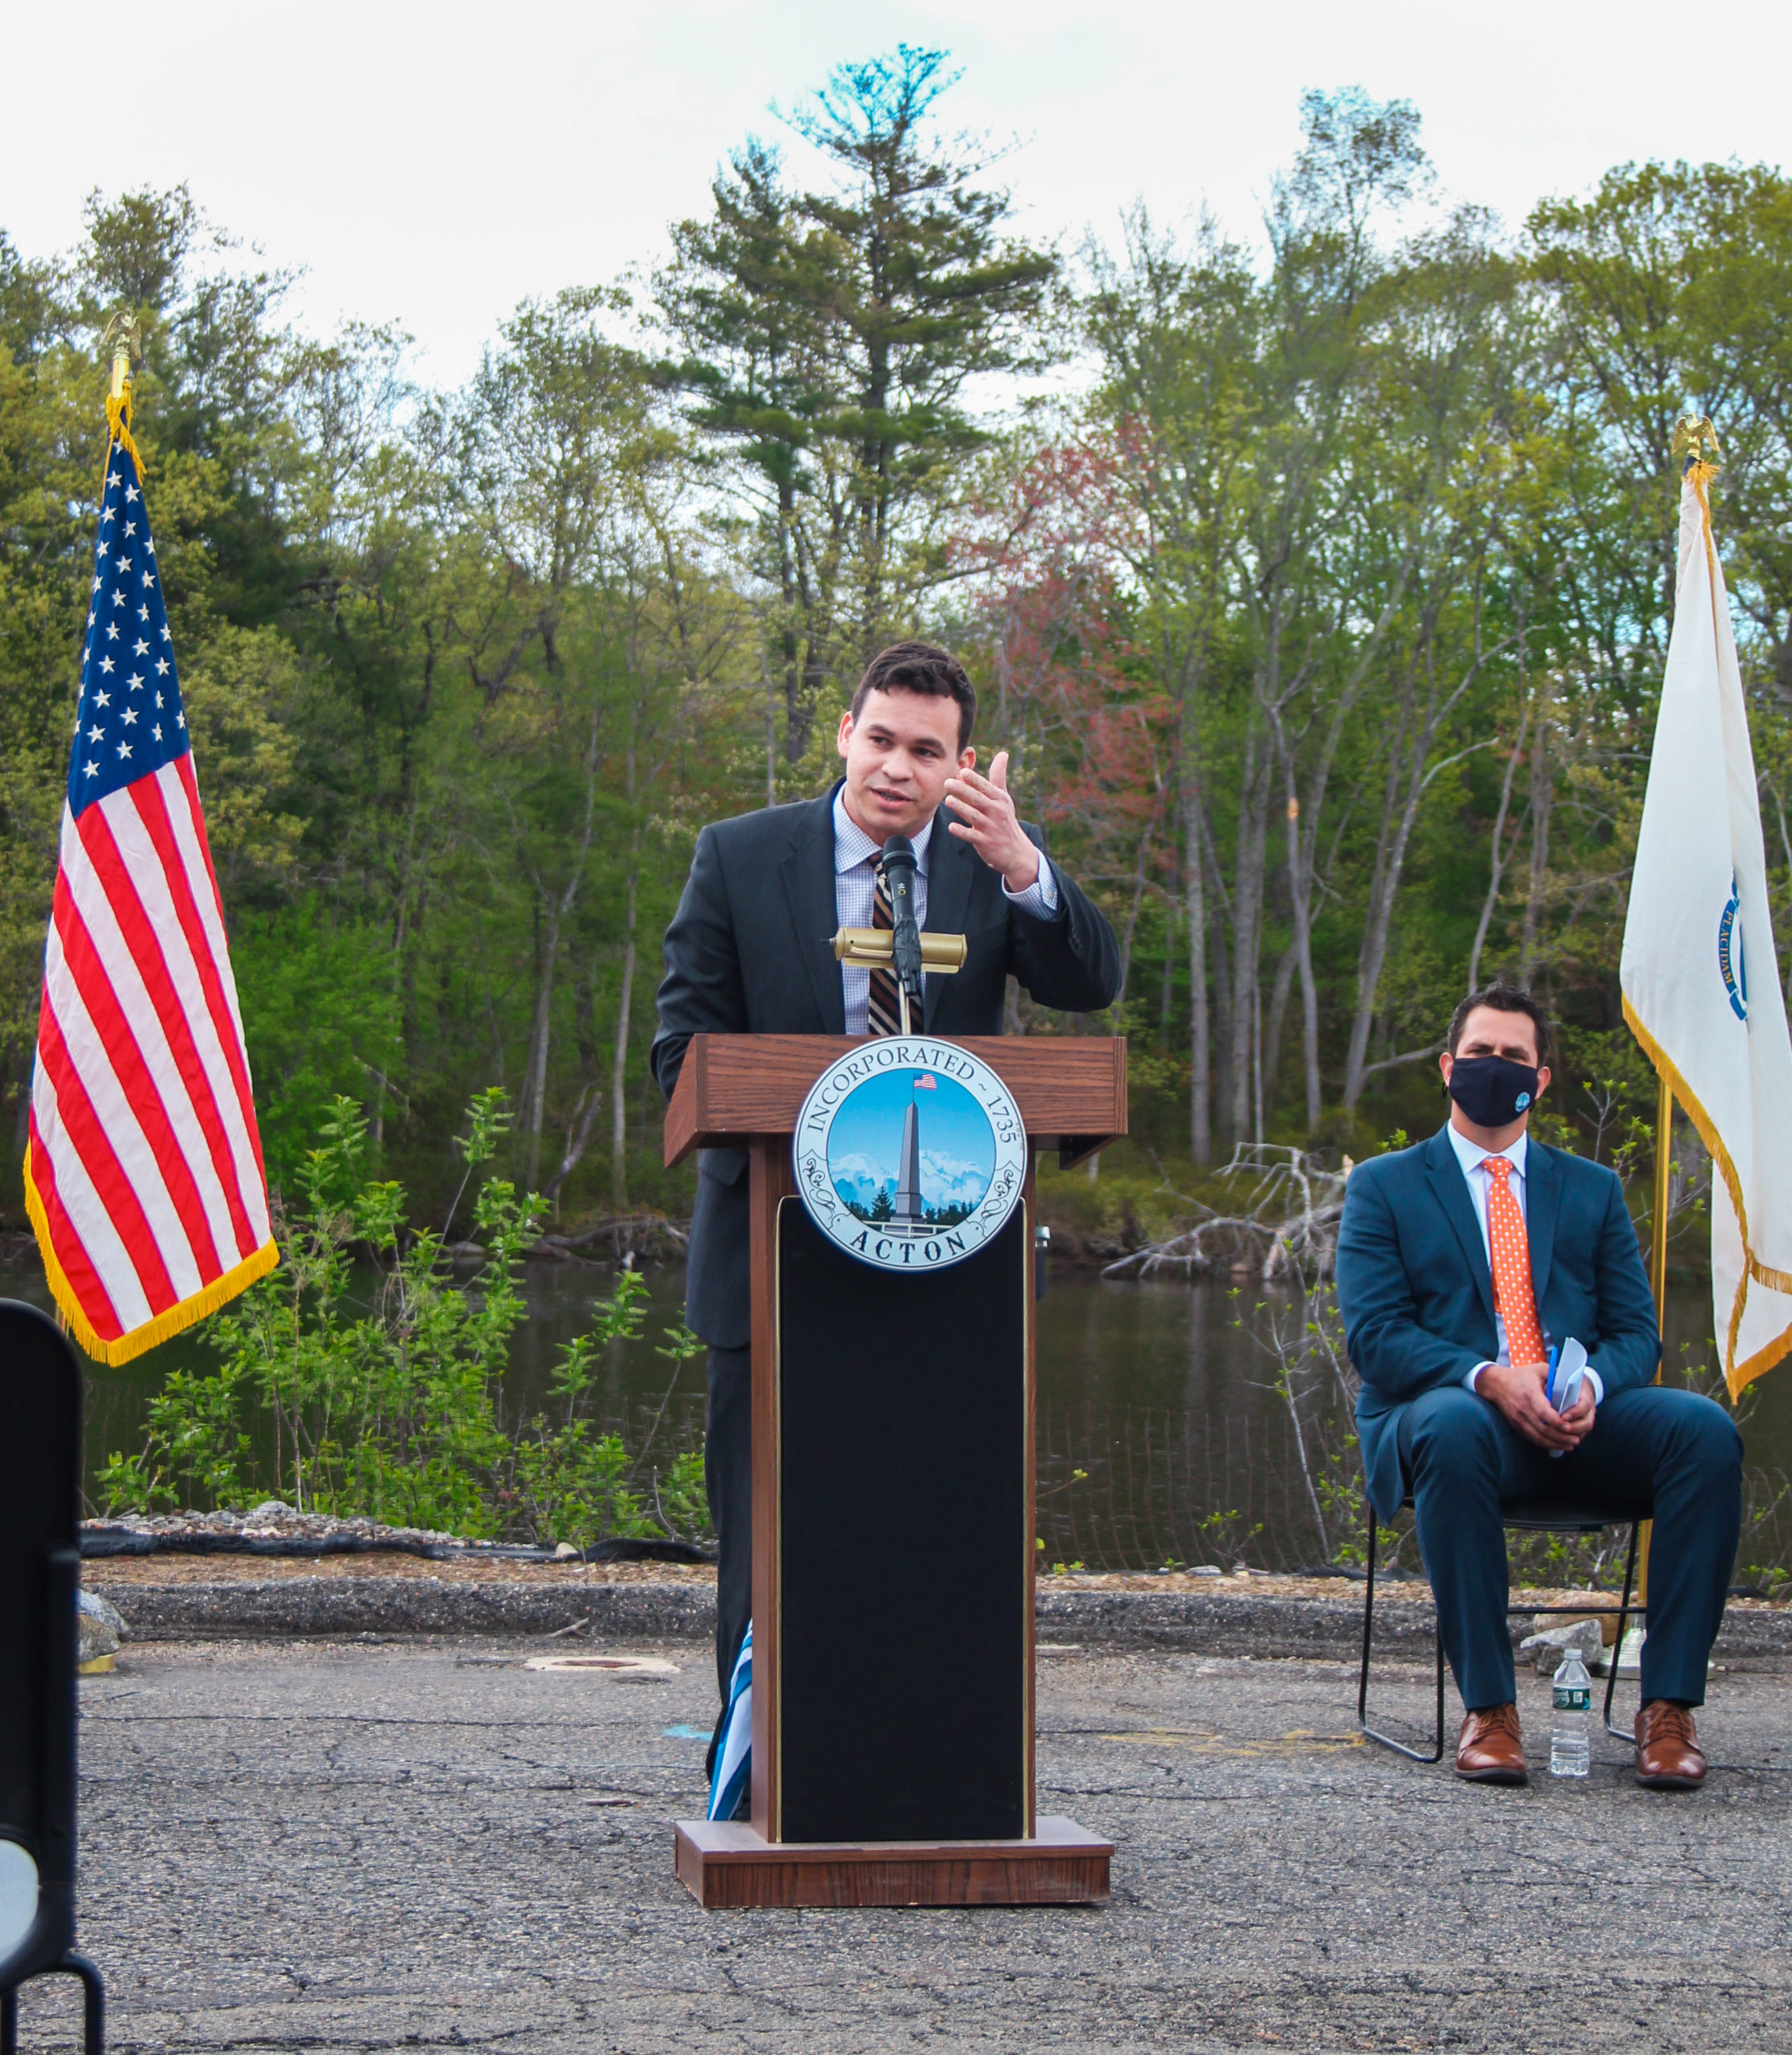 Rep. Sena speaks at a MassWorks celebration of a $2,750,000 state grant to support the construction of Powder Mill Place, a 40B housing development with 59 affordable units in South Acton